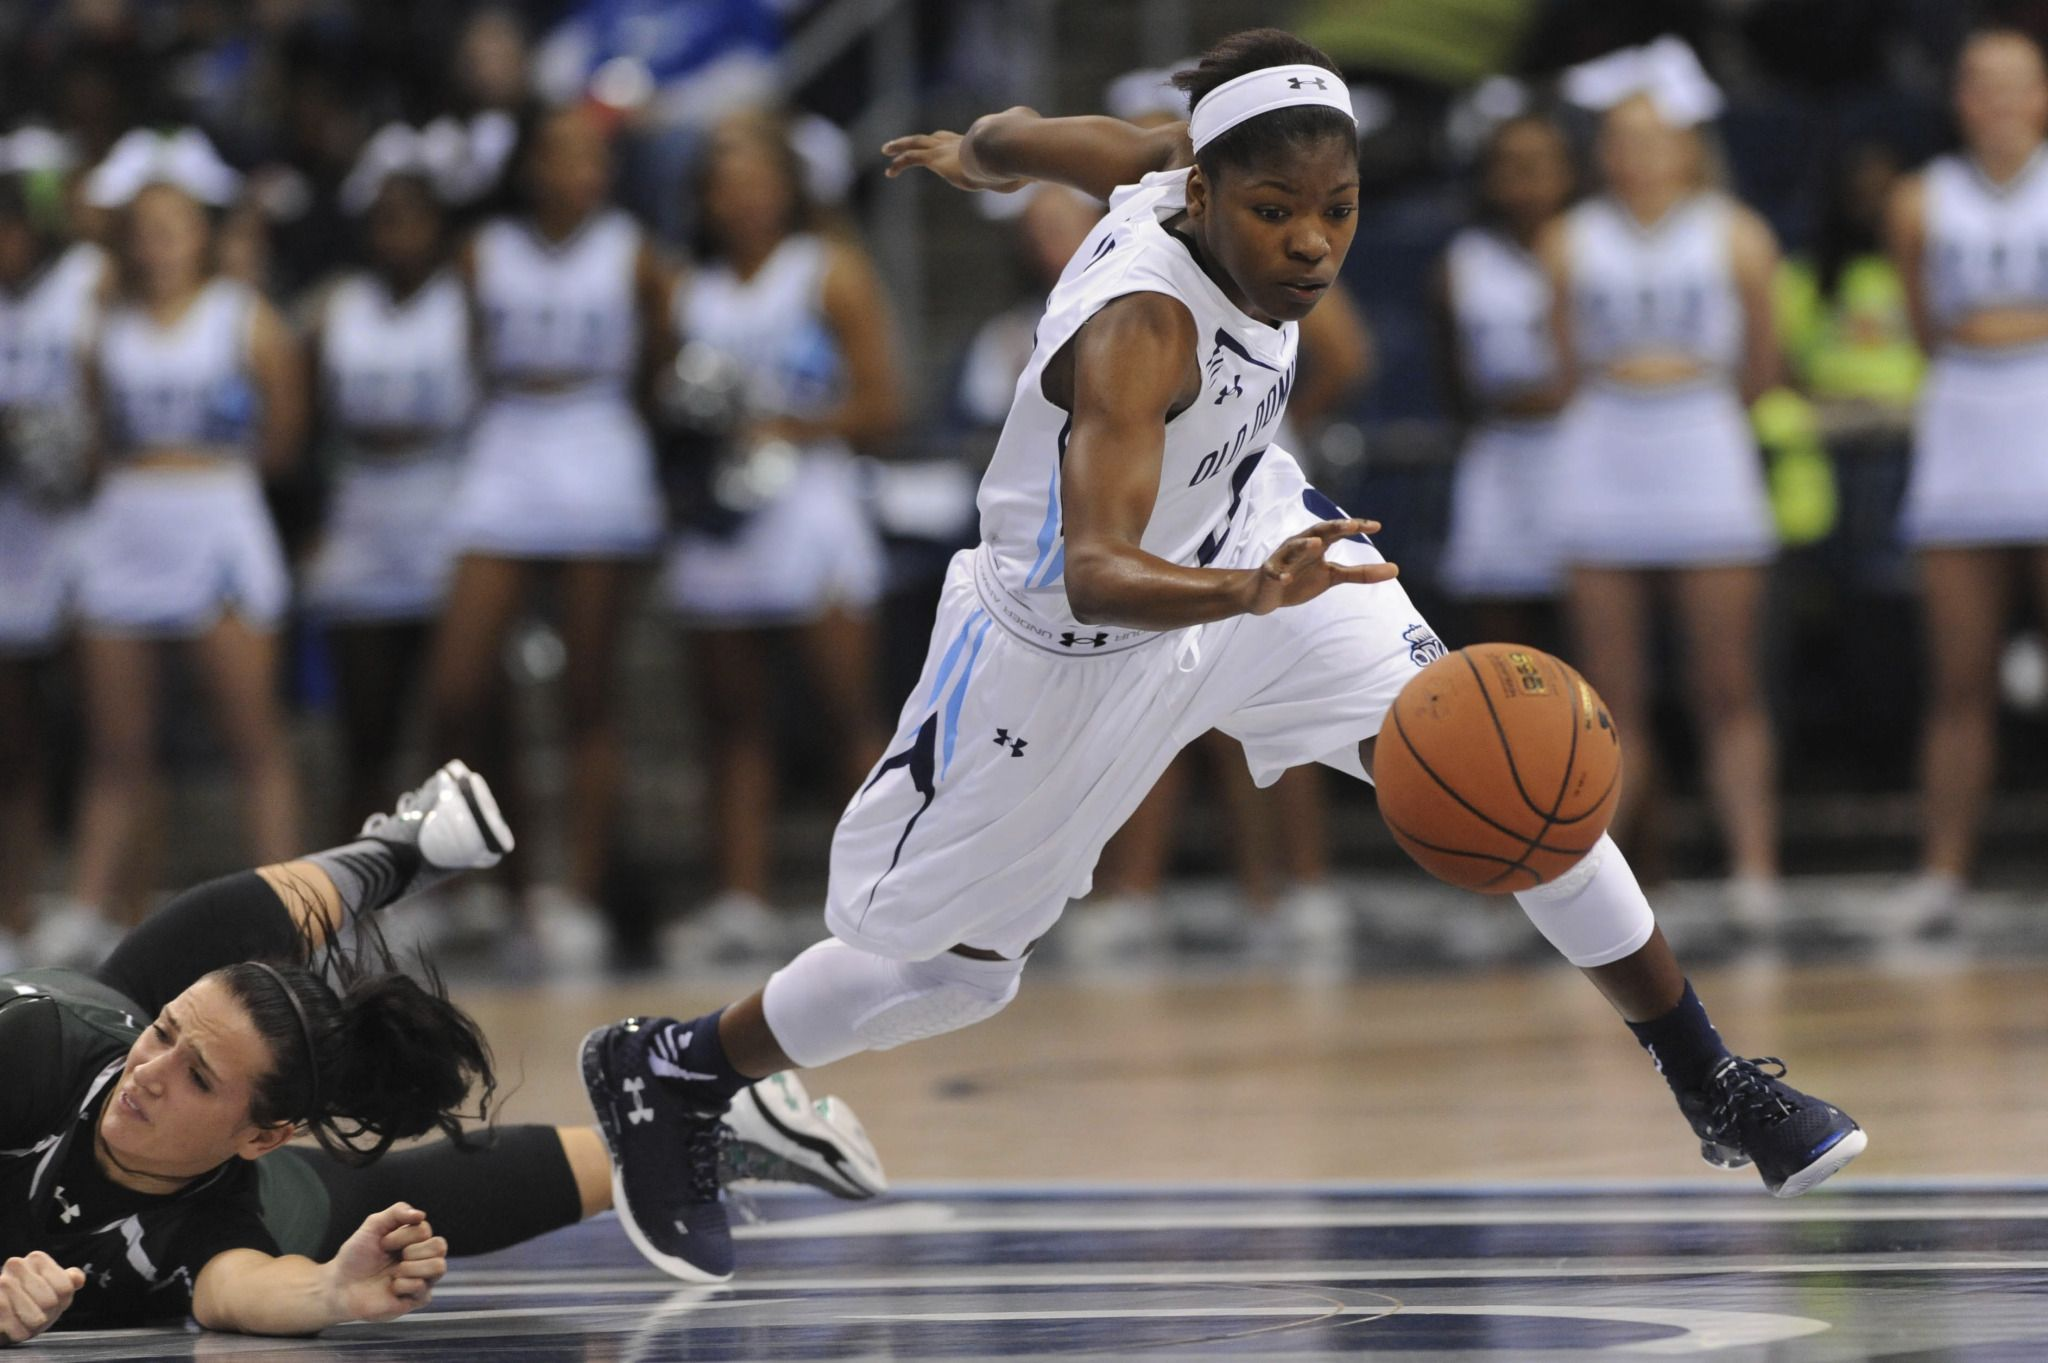 Lady Monarchs Old Dominion University Old Dominion University Old Dominion Athlete